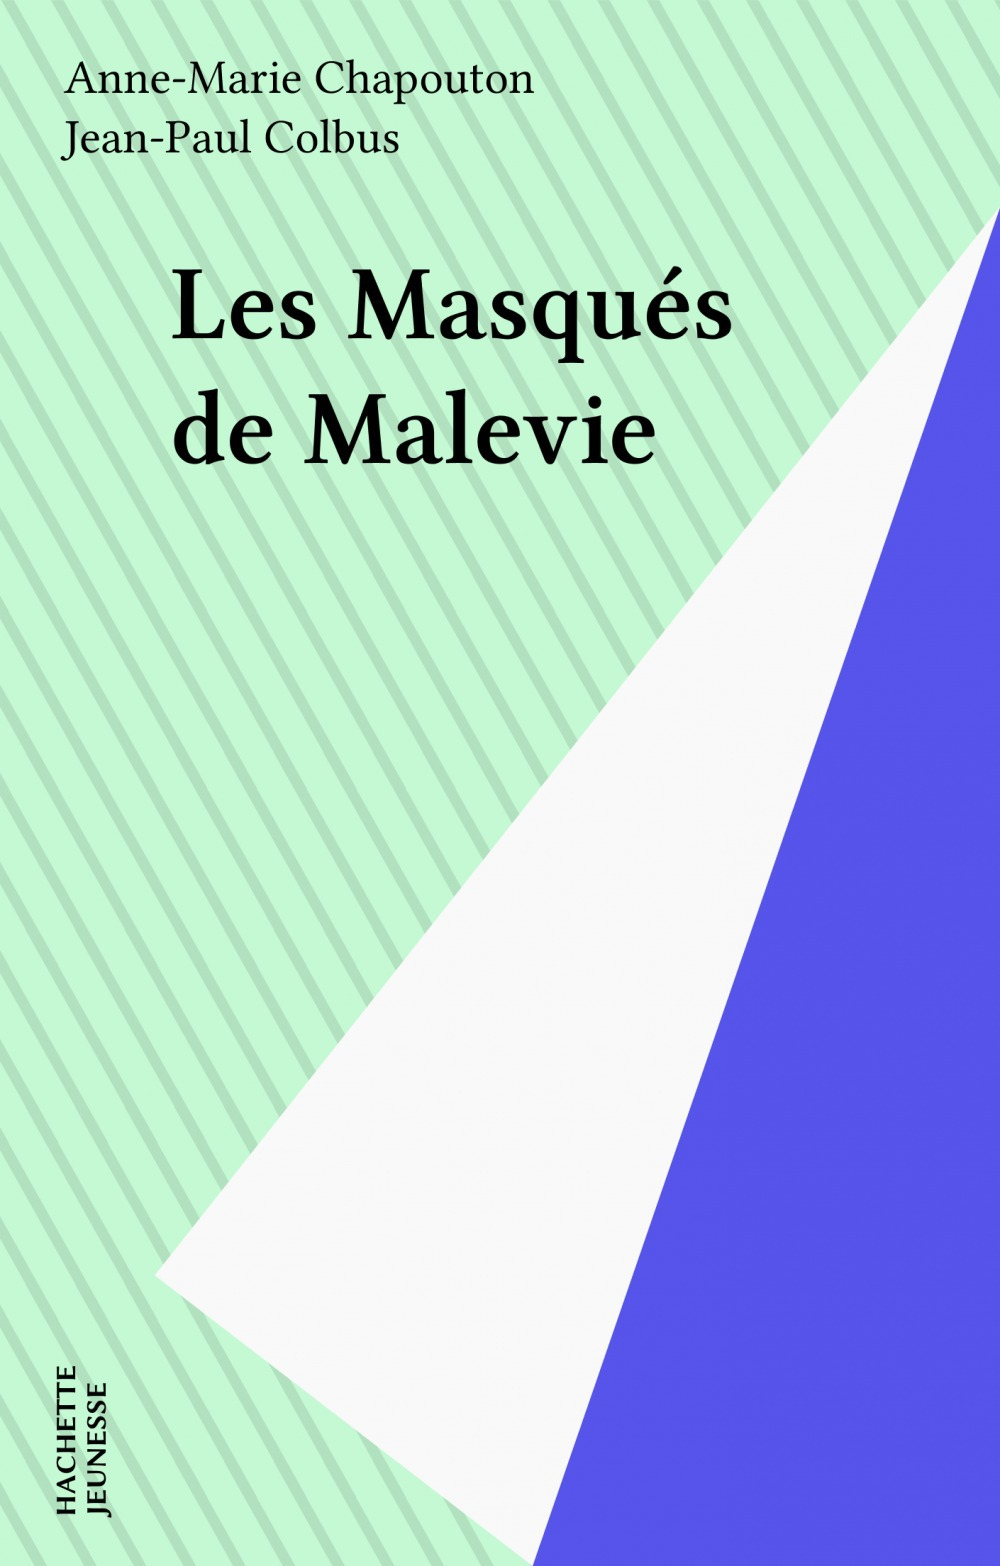 Les masques de malevie